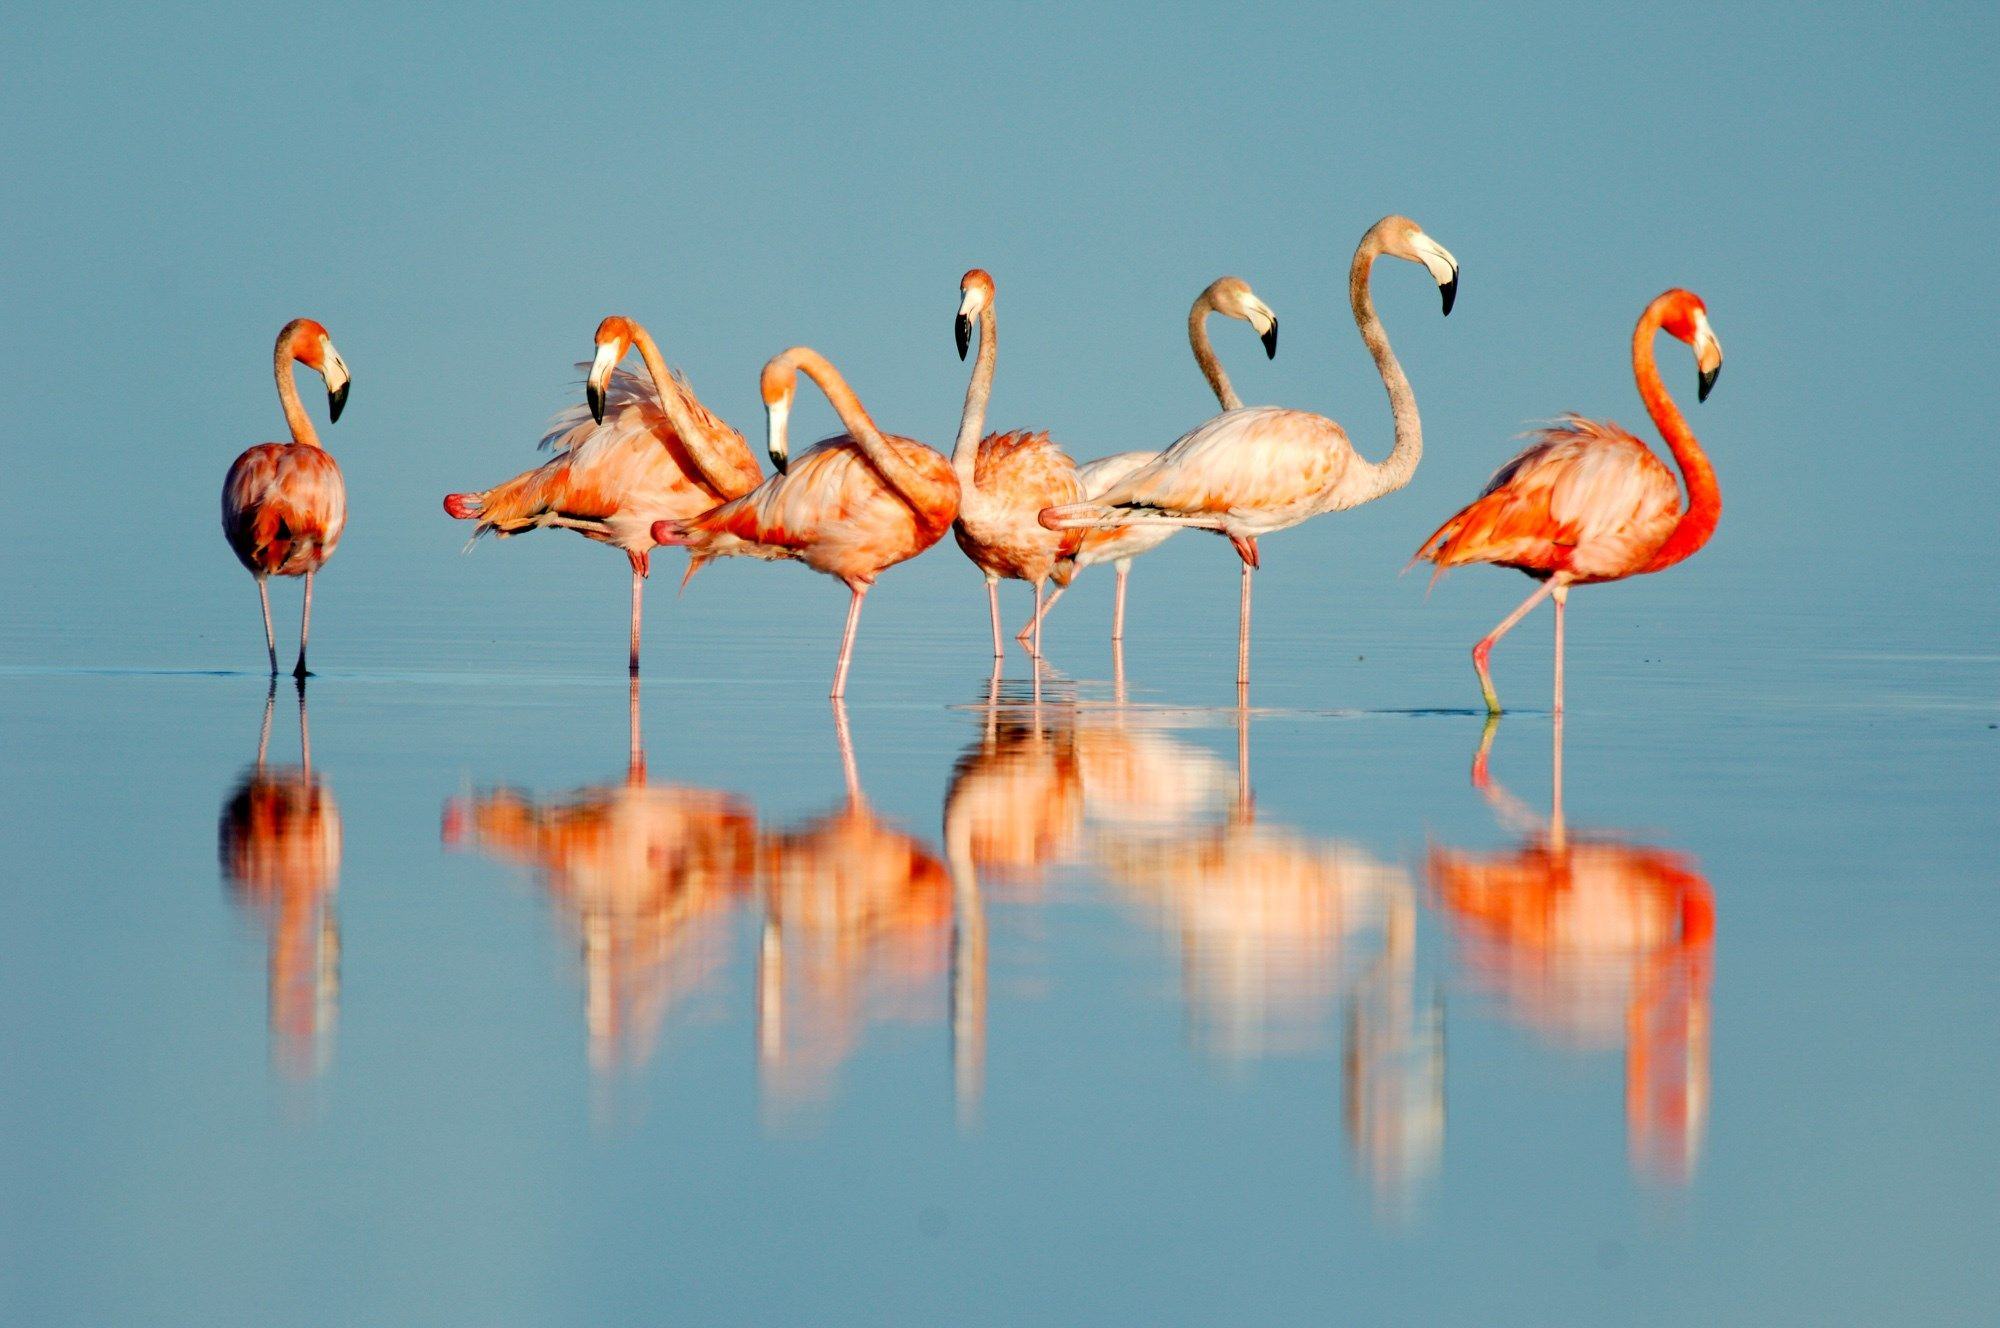 flamingo hd widescreen wallpapers backgrounds